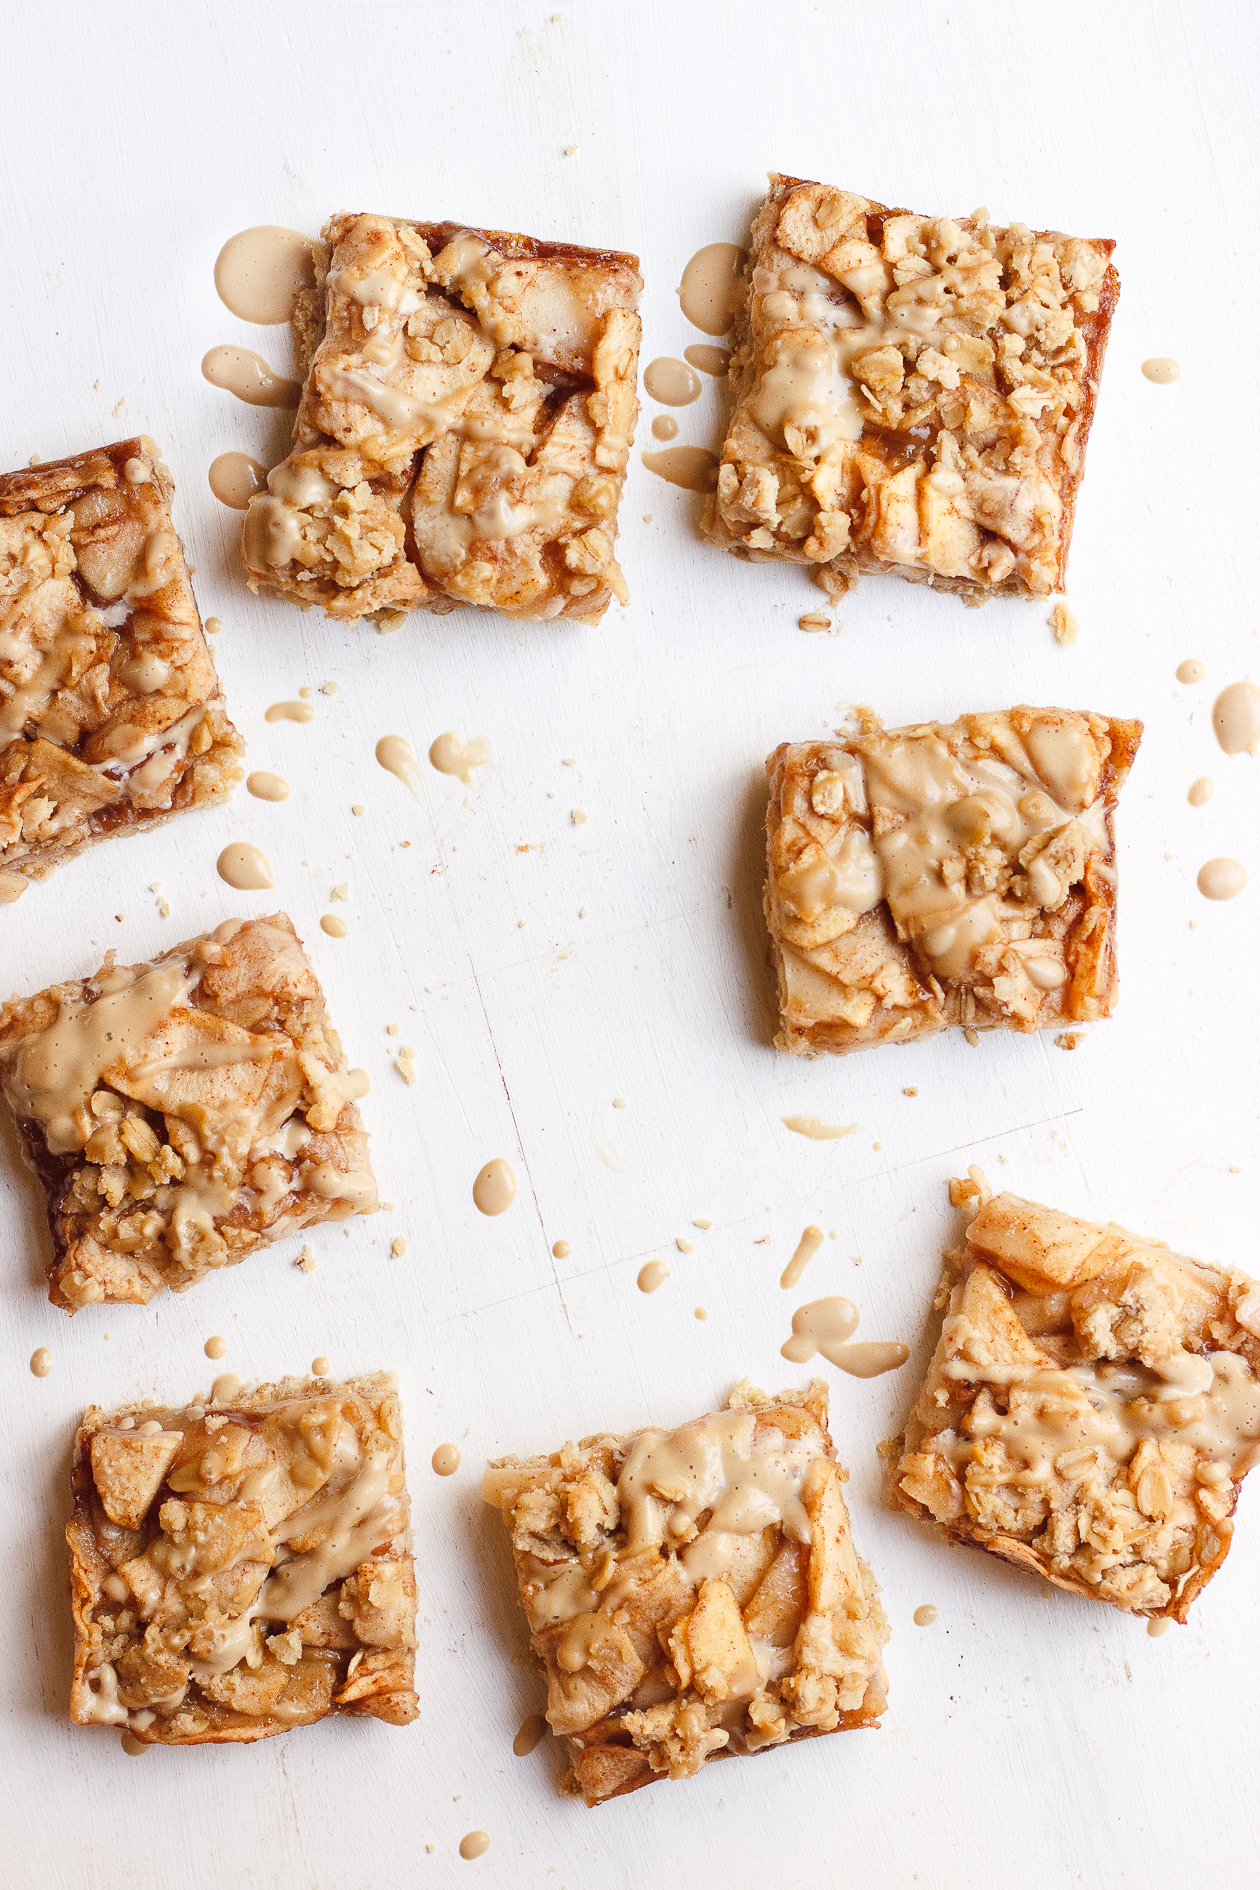 Apple Crumb Bars with Maple Coffee Glaze | These maple-sweetened, gluten-free and naturally vegan, oat apple crumb bars are fancied up with a light drizzle of a maple coffee glaze.